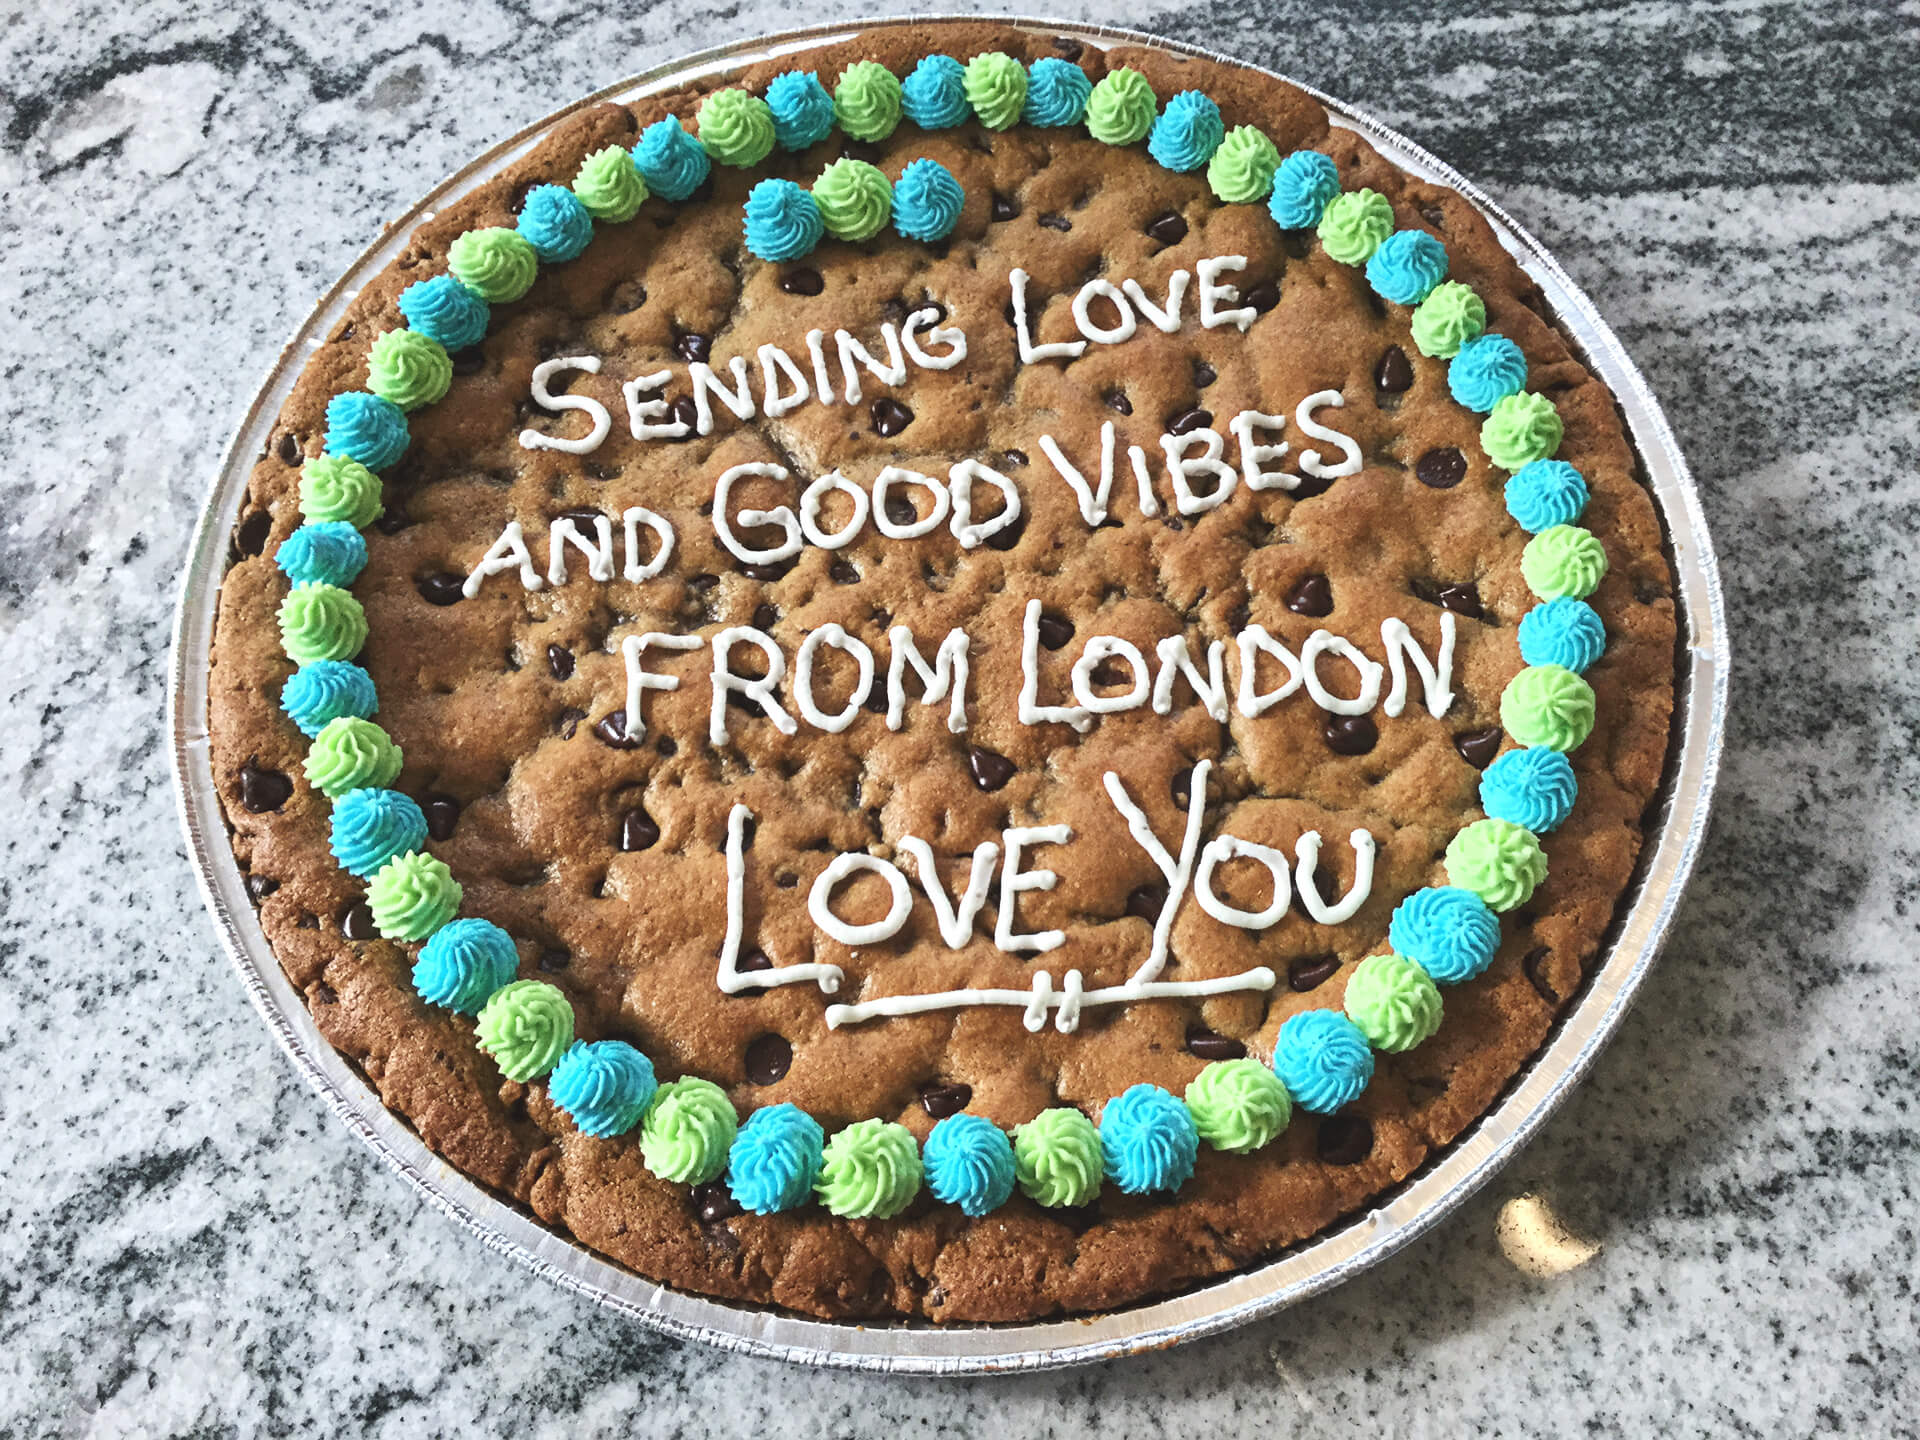 Sending good vibes cookiegram